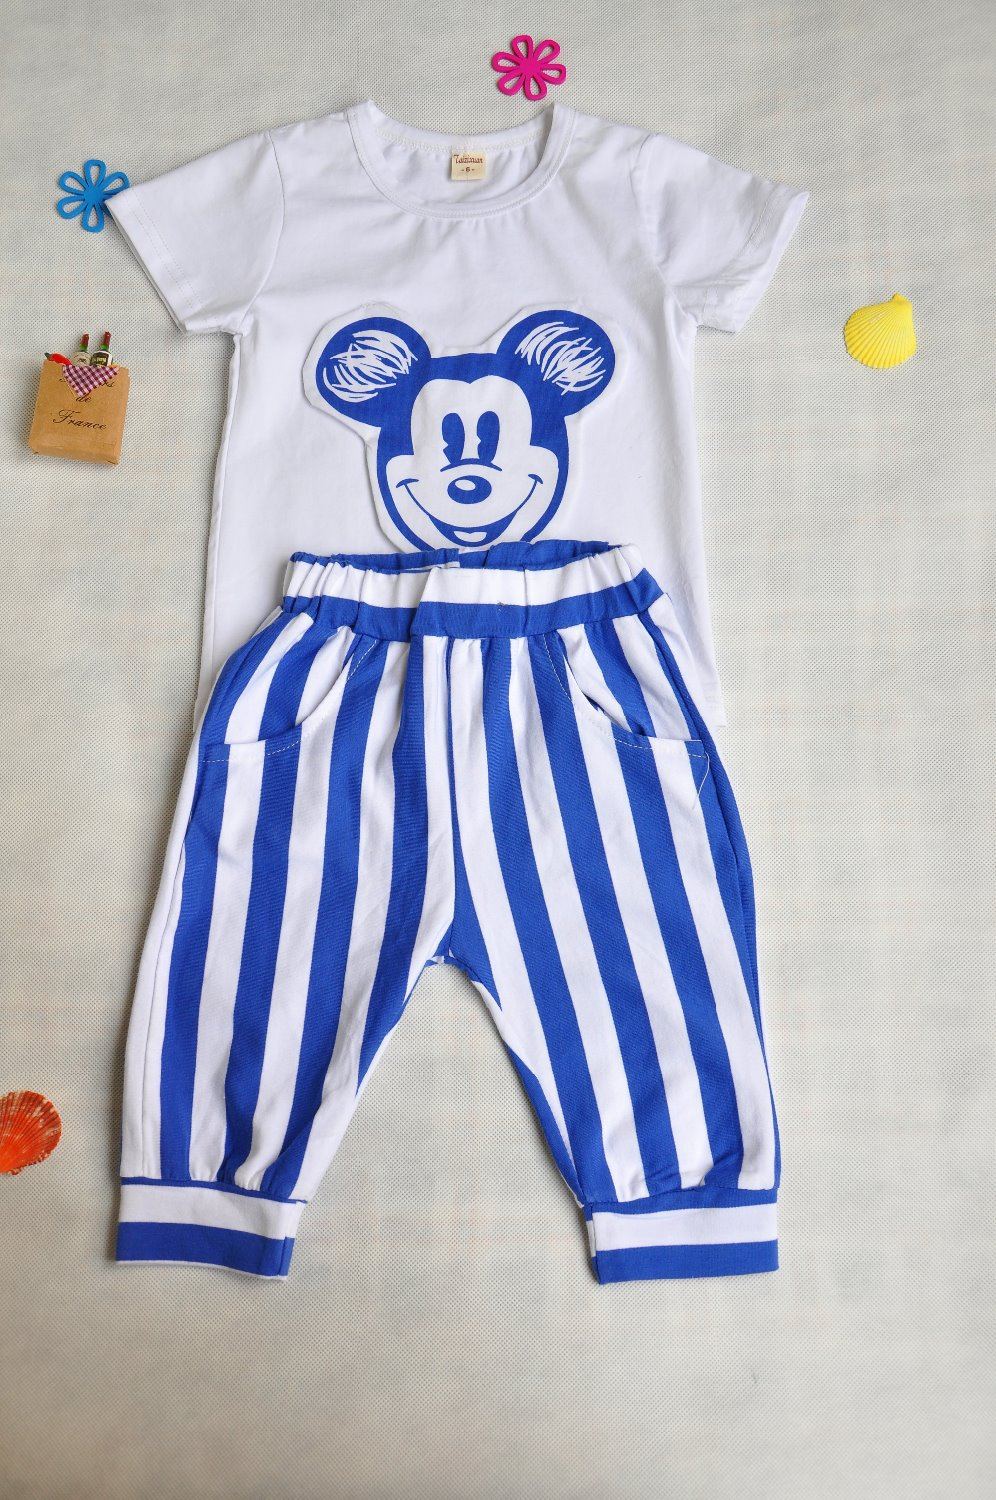 2-3-4-5-6-7Ybaby girls or boys knitted short brand 2 Pieces sets(China (Mainland))